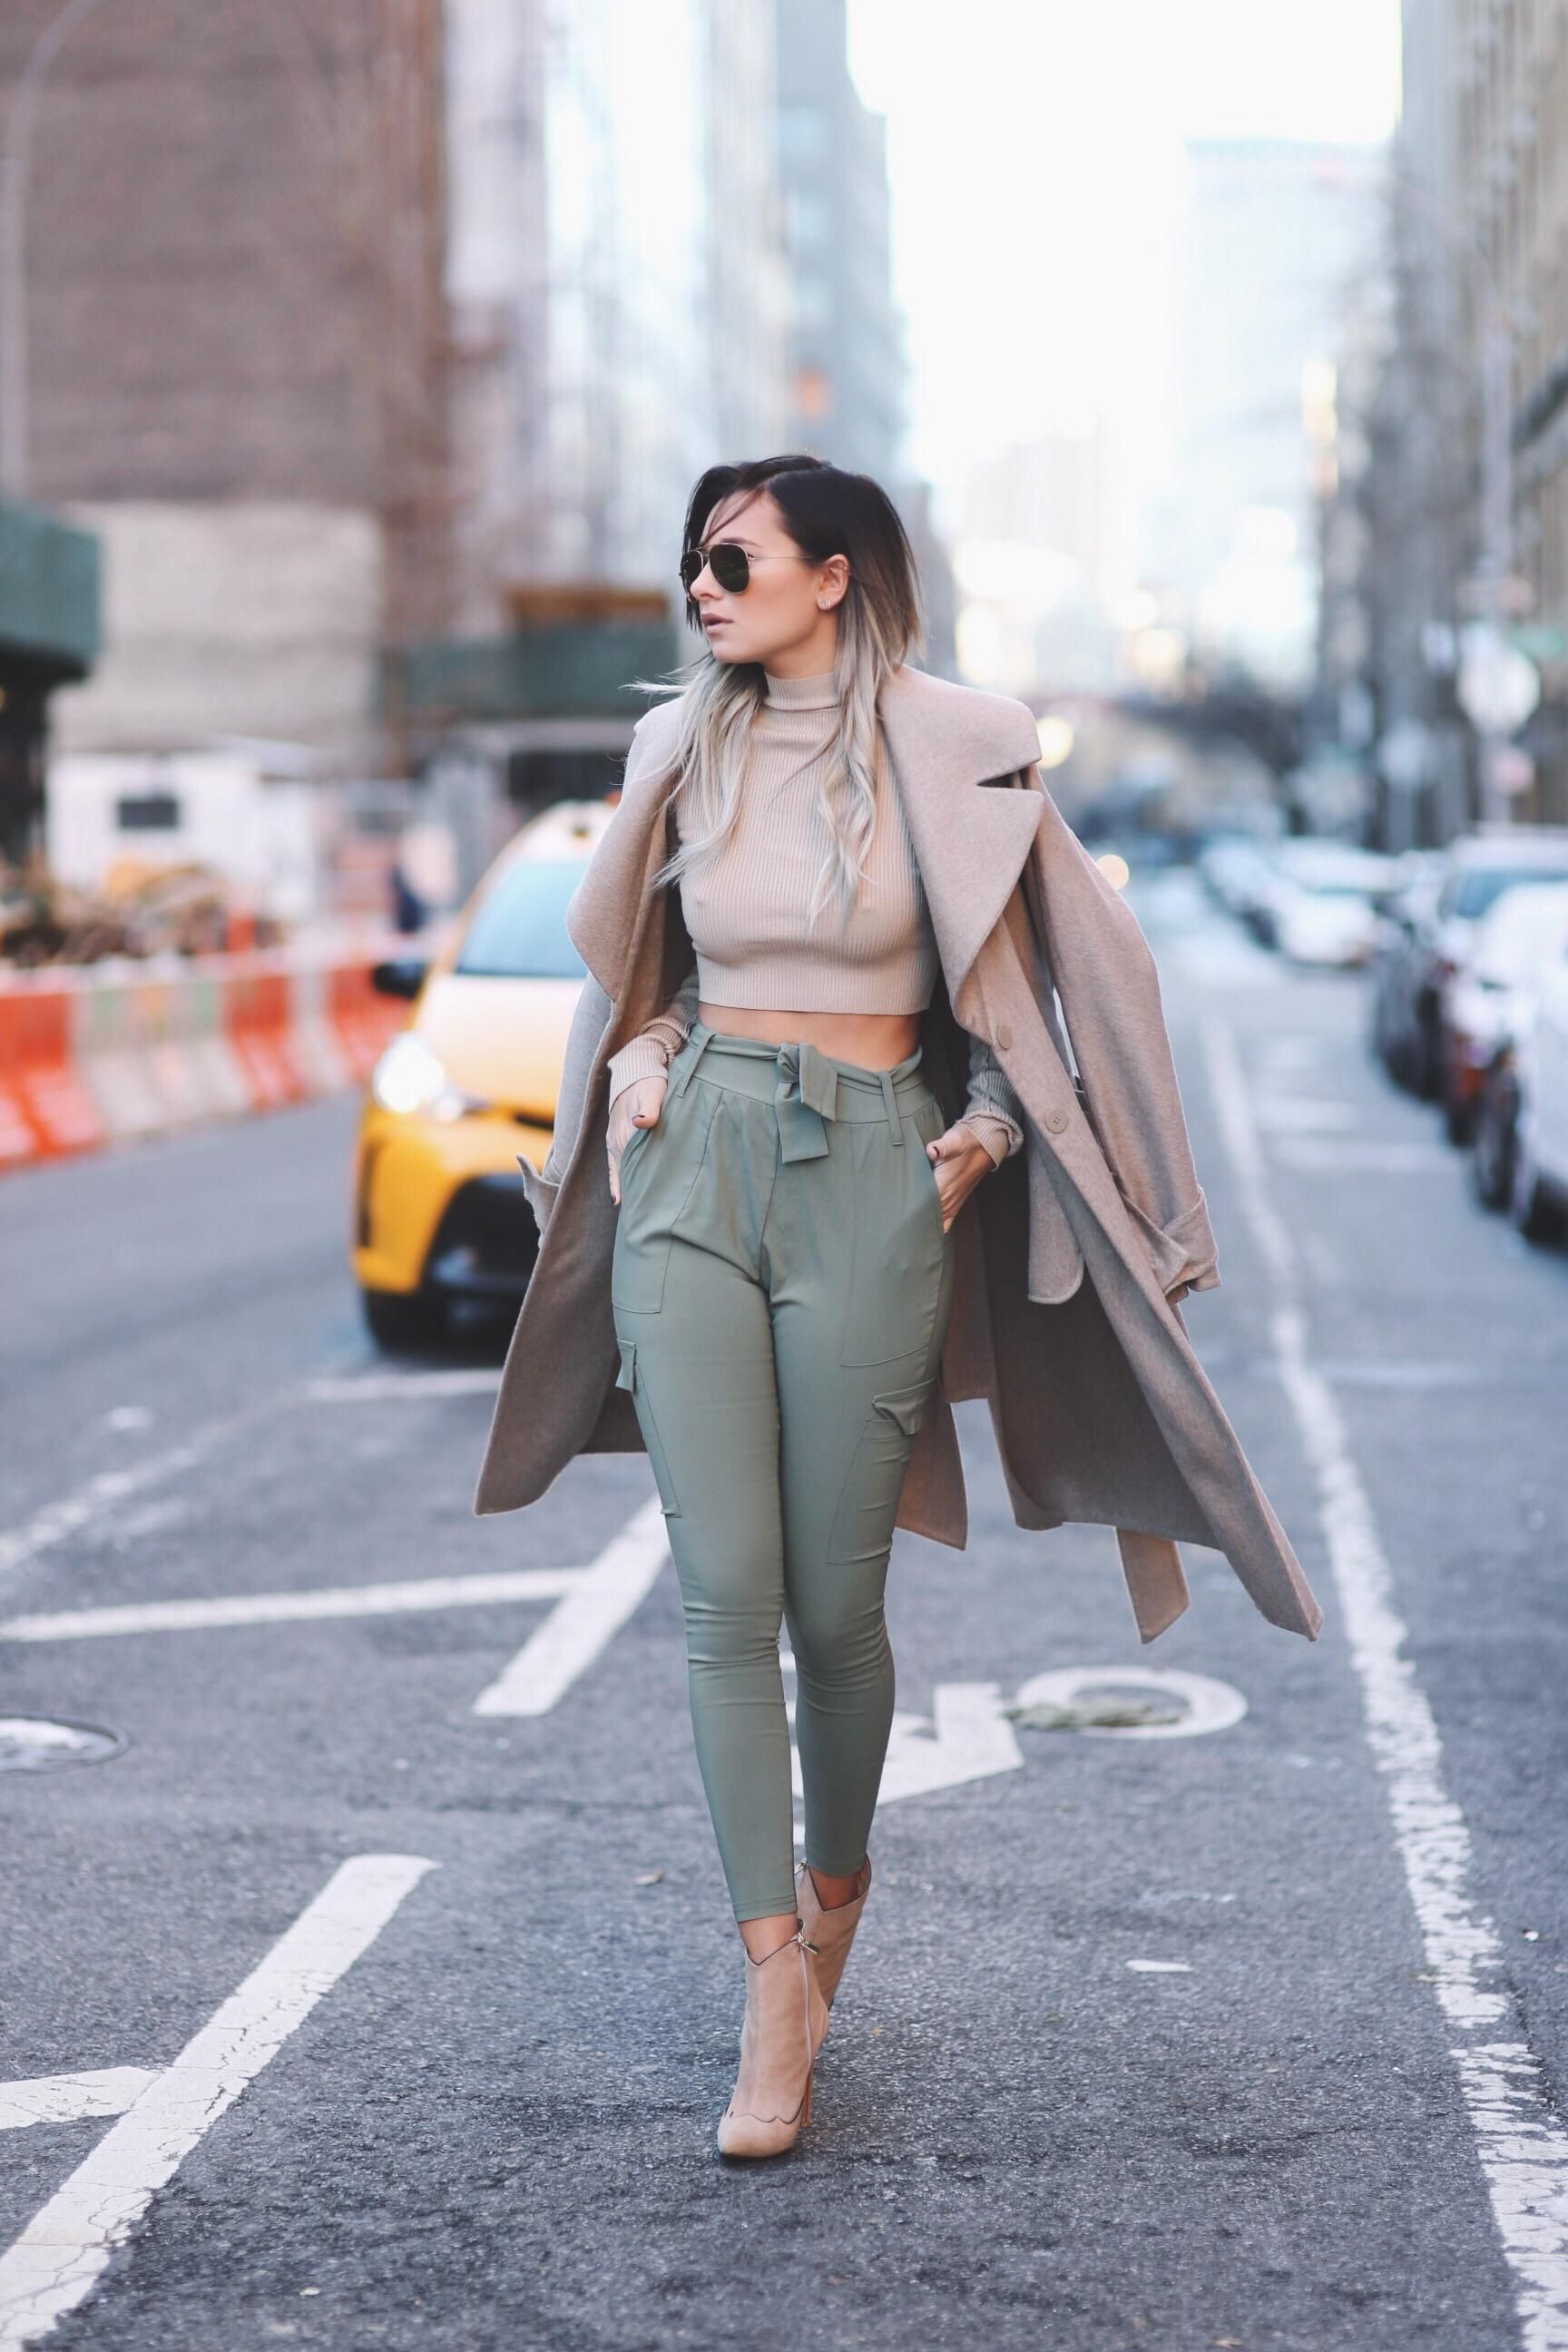 5 Winter Date Outfits to Try This Season  Fashion, Winter date